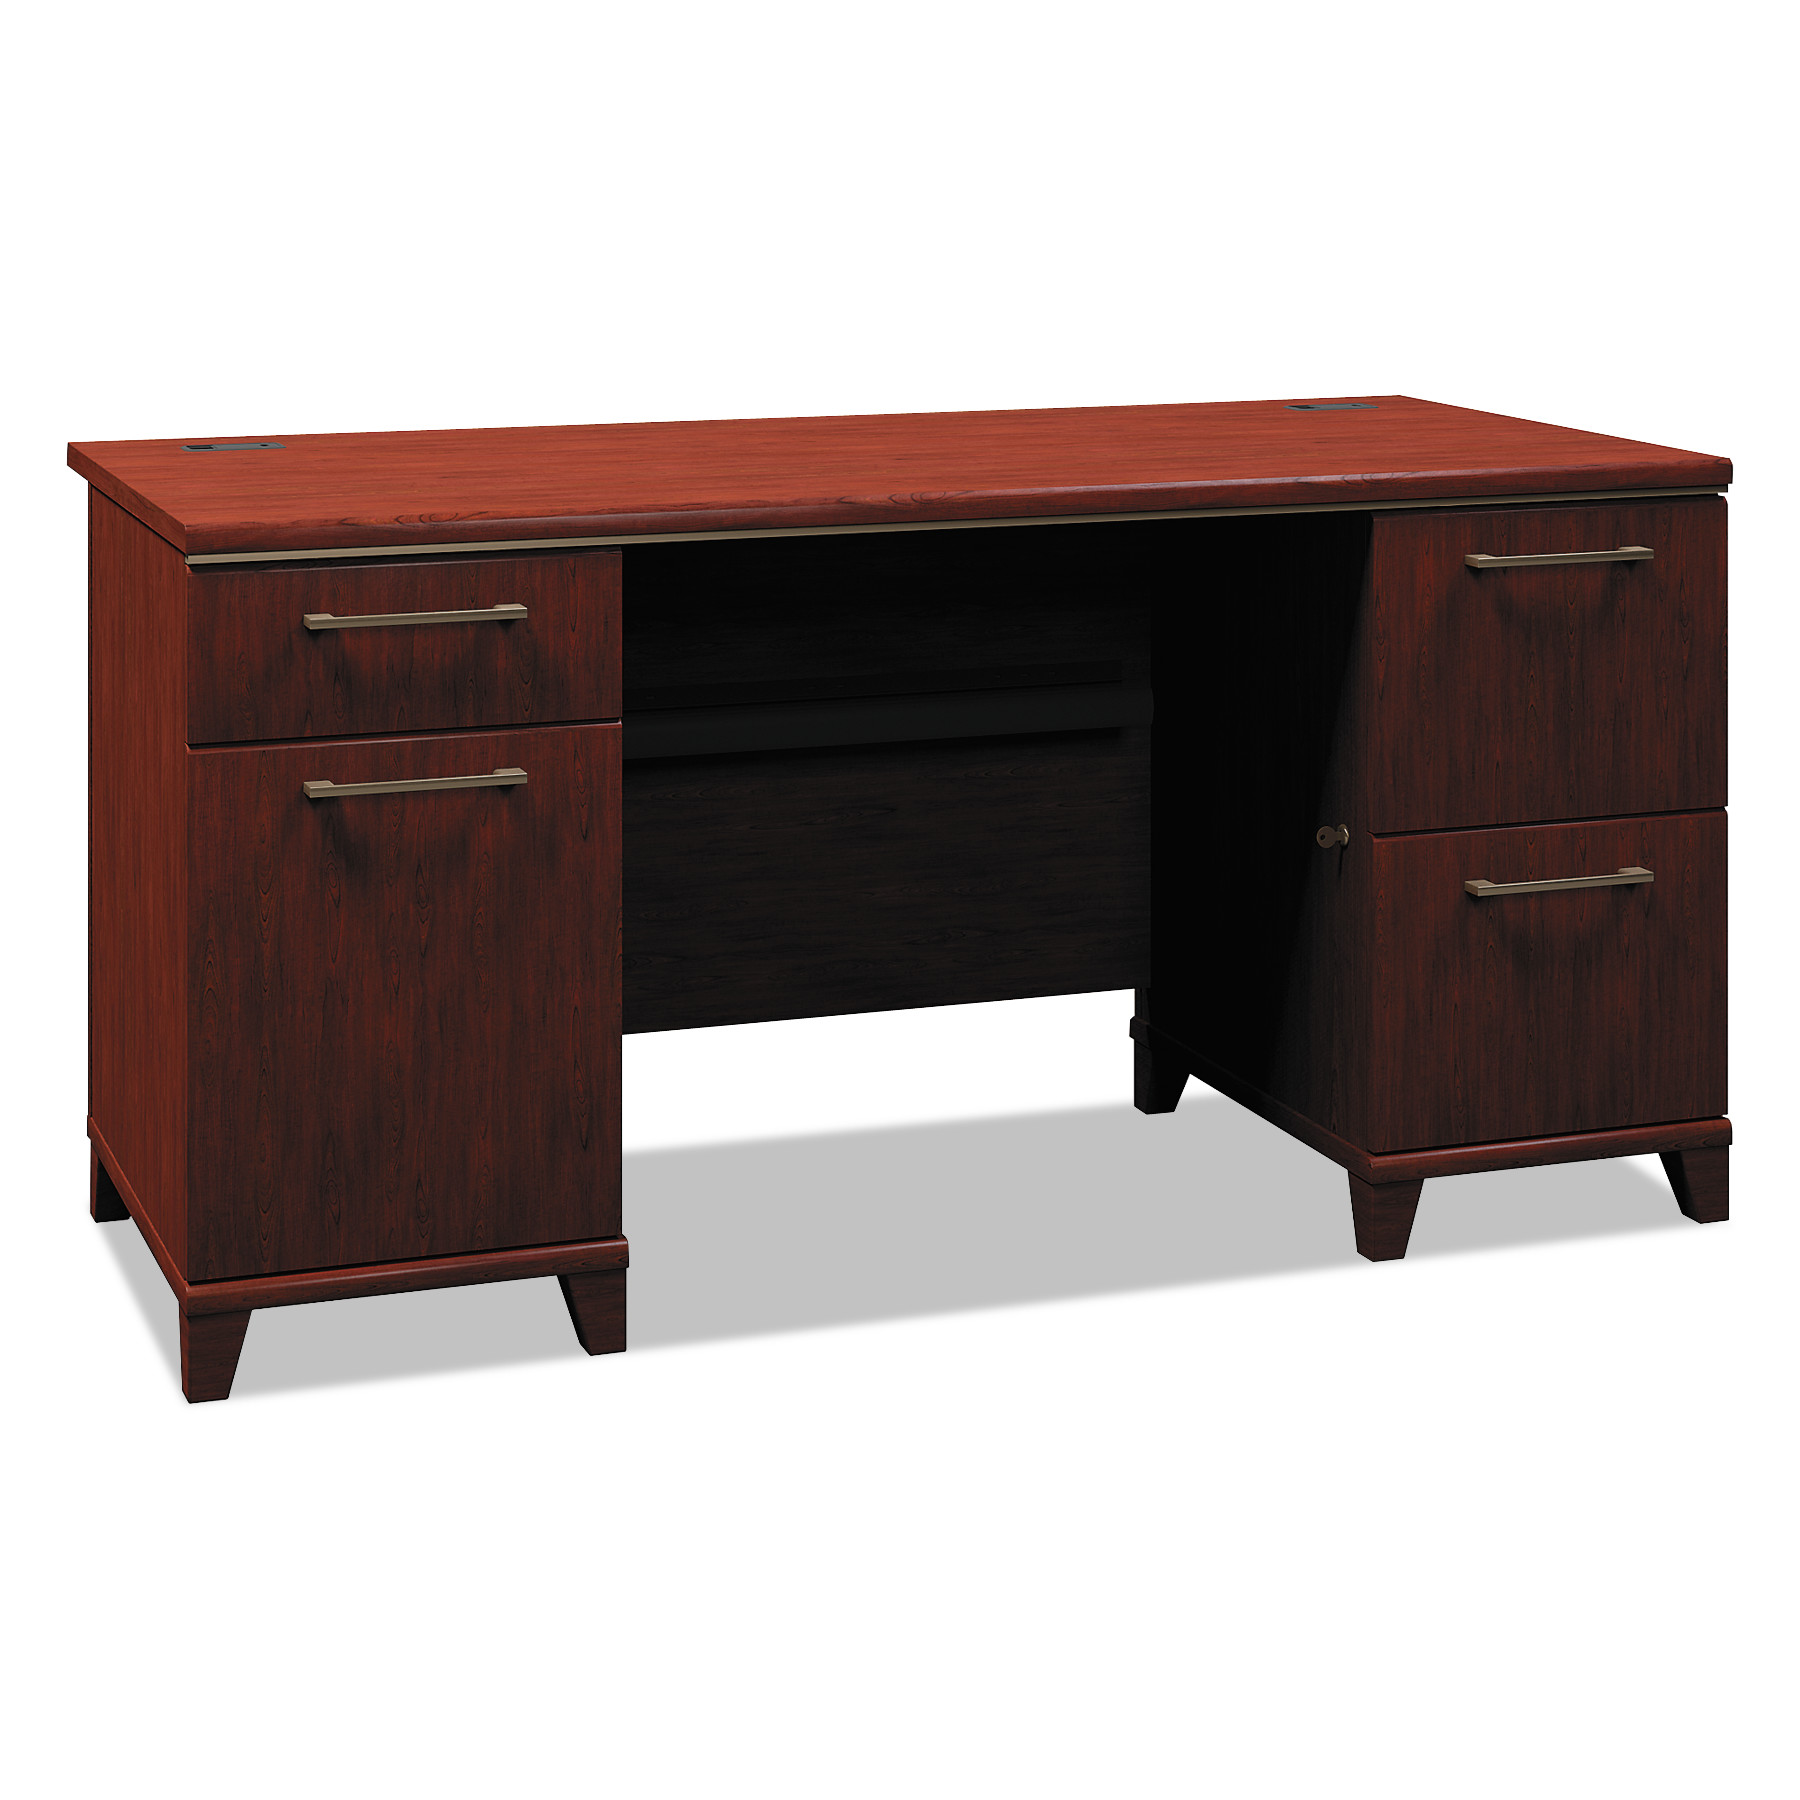 Enterprise Collection 60W Double Pedestal Desk, Harvest Cherry (Box 1 of 2)